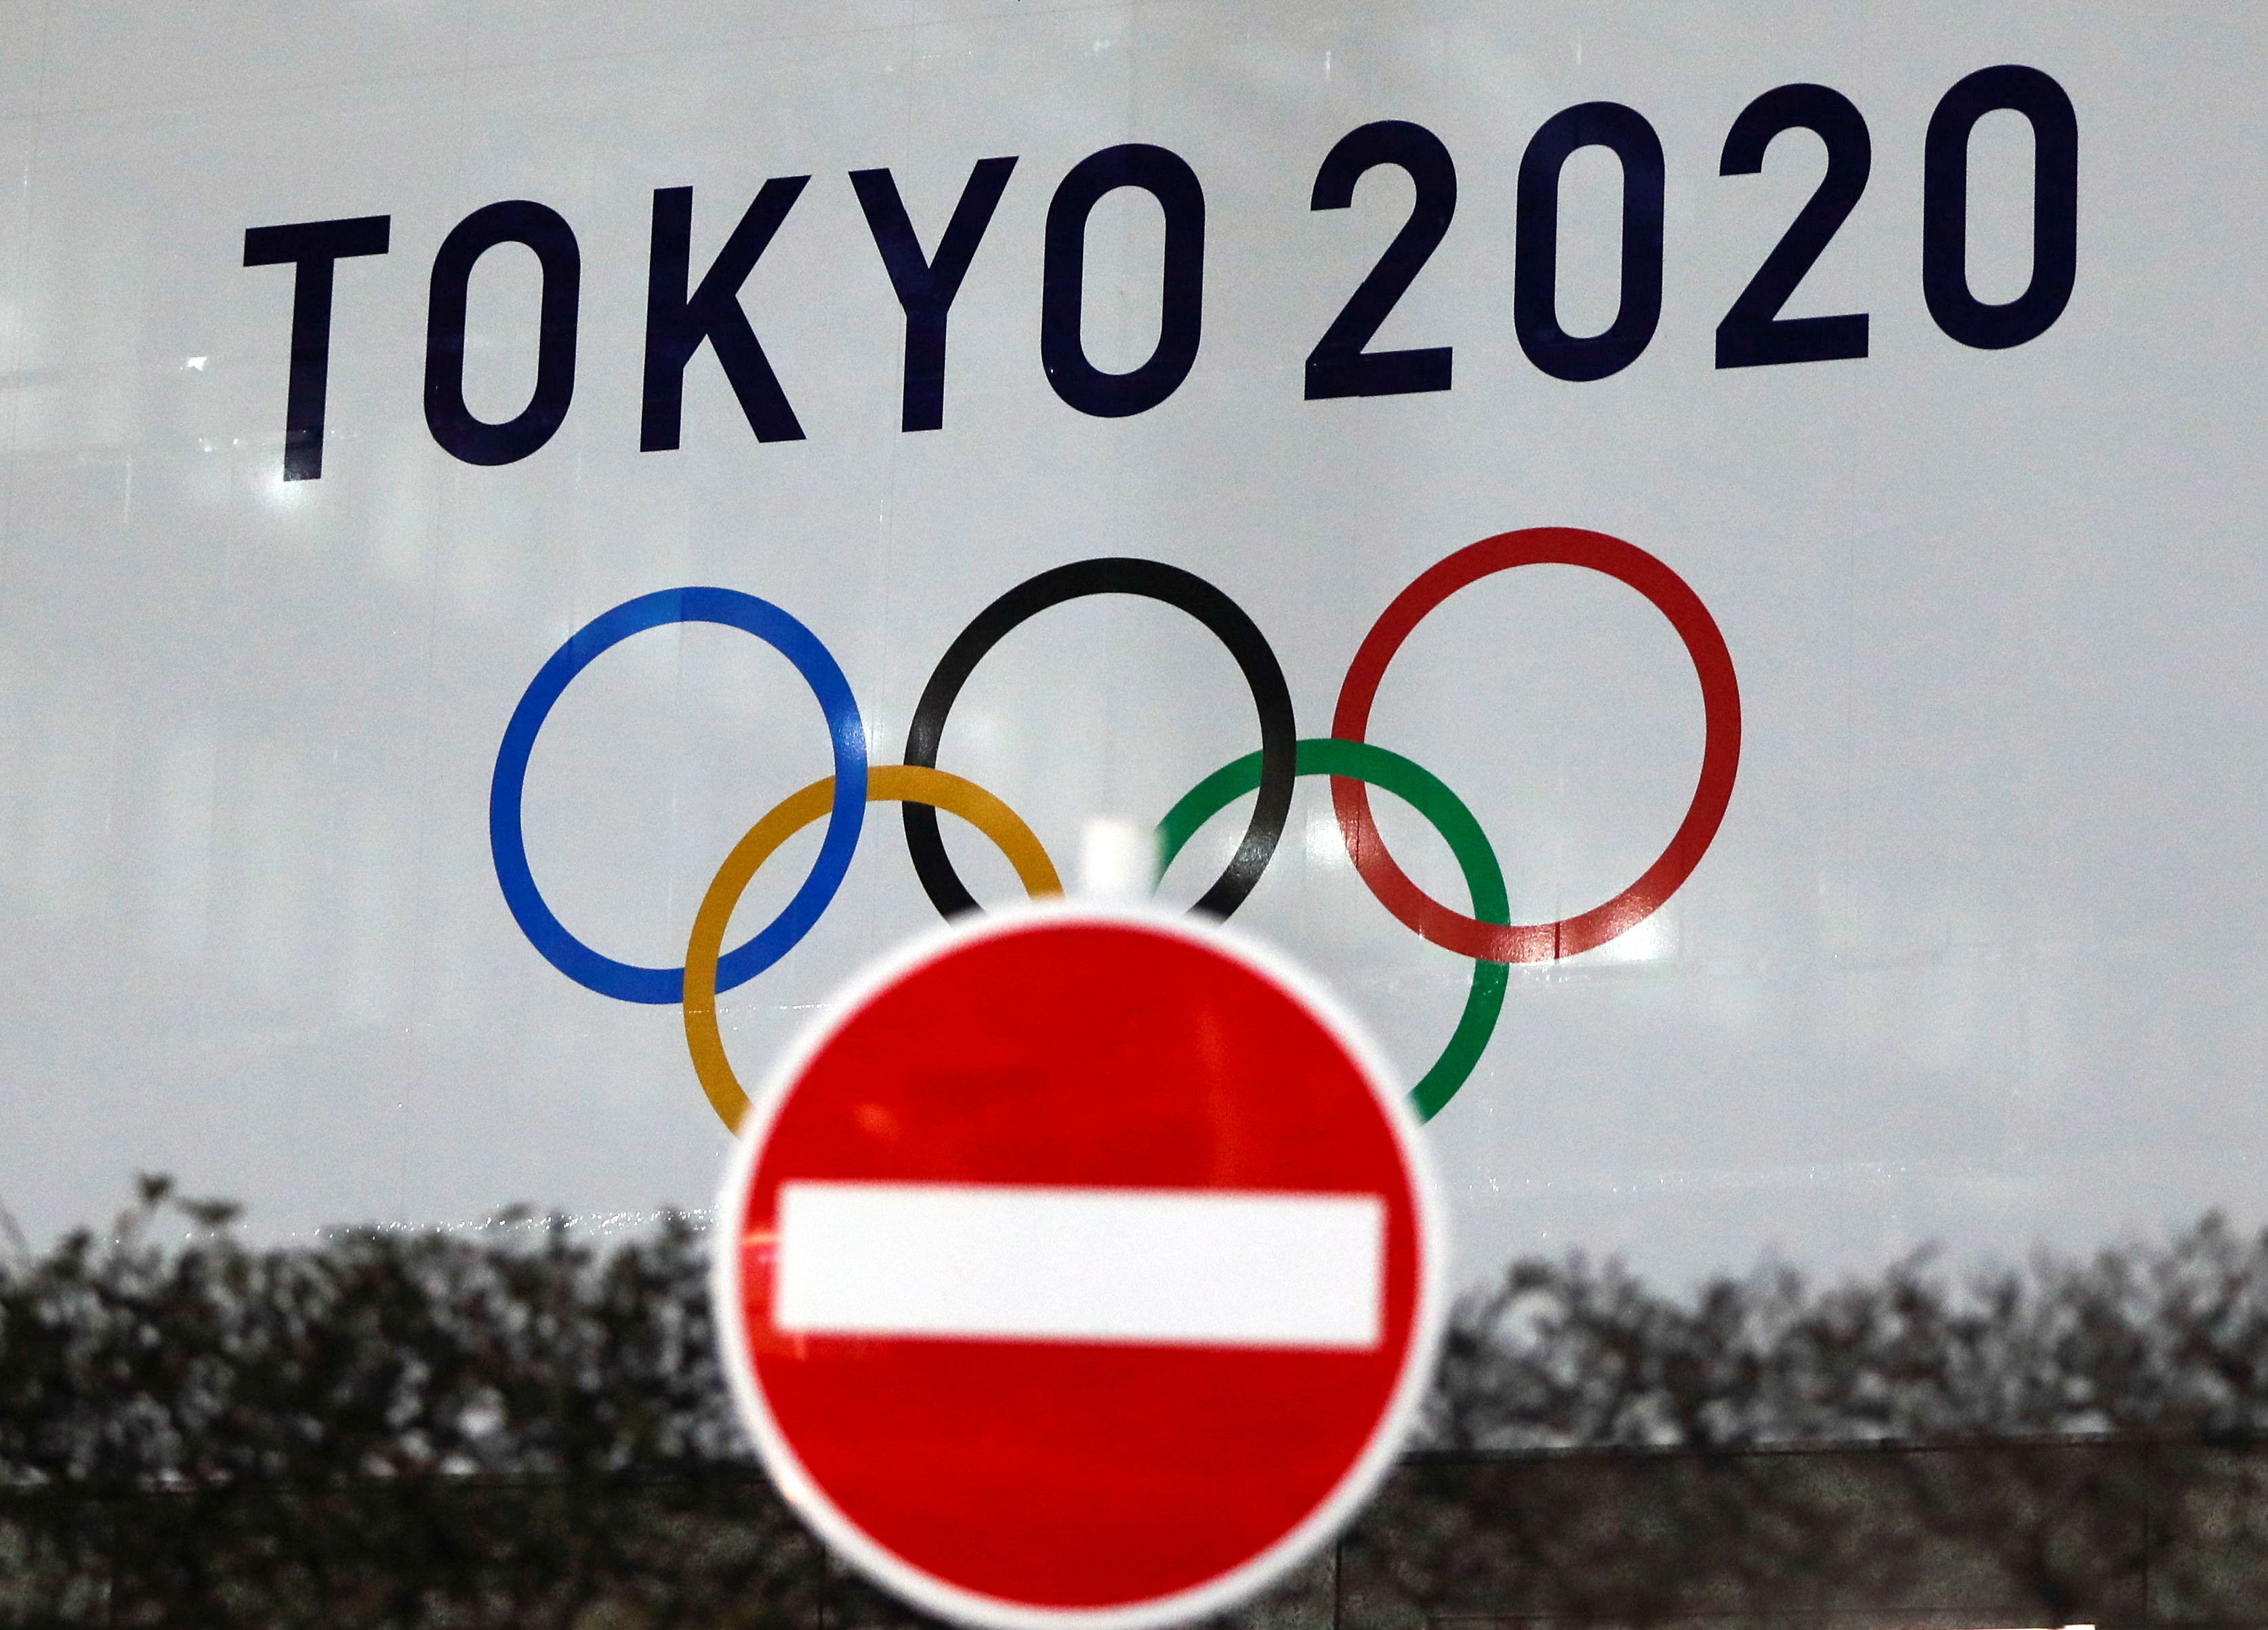 The logo of Tokyo 2020 Olympic Games that have been postponed to 2021 due to the coronavirus disease (COVID-19) outbreak, is seen through a traffic sign at Tokyo Metropolitan Government Office building in Tokyo, Japan January 22, 2021. REUTERS/Issei Kato/File Photo